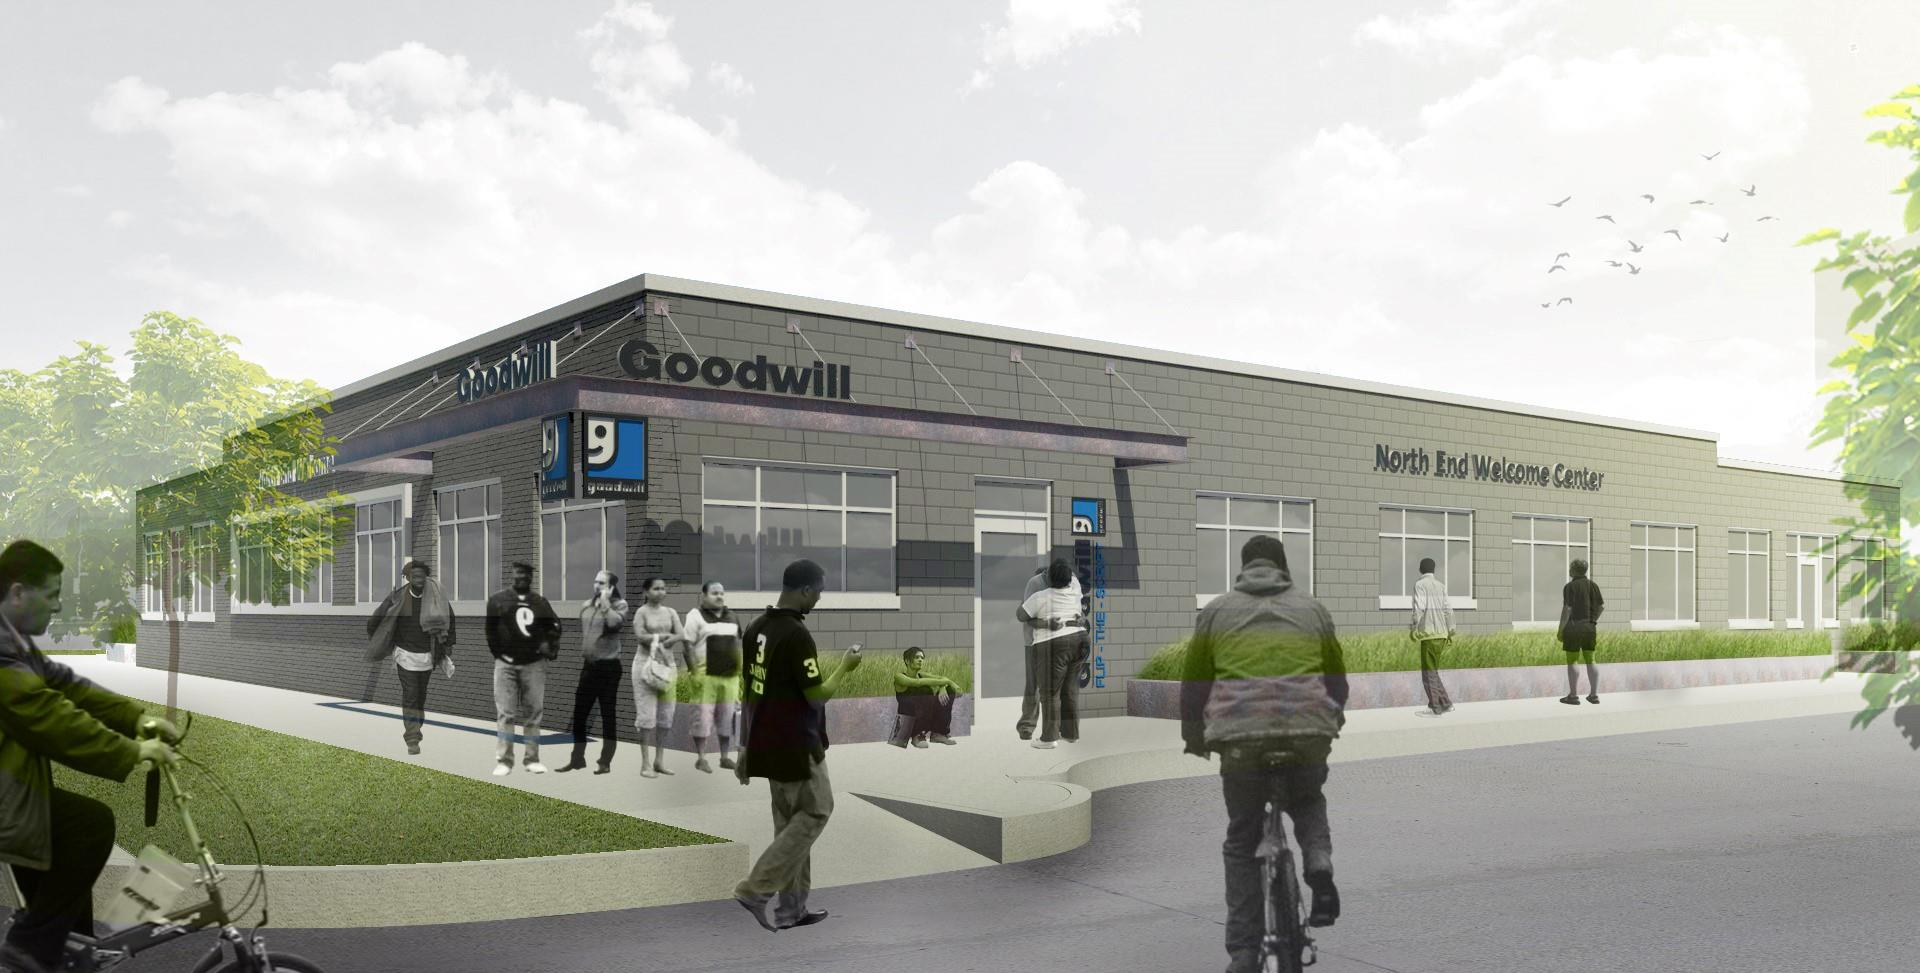 Rendering of the new Goodwill Industries center via the Kresge Foundation